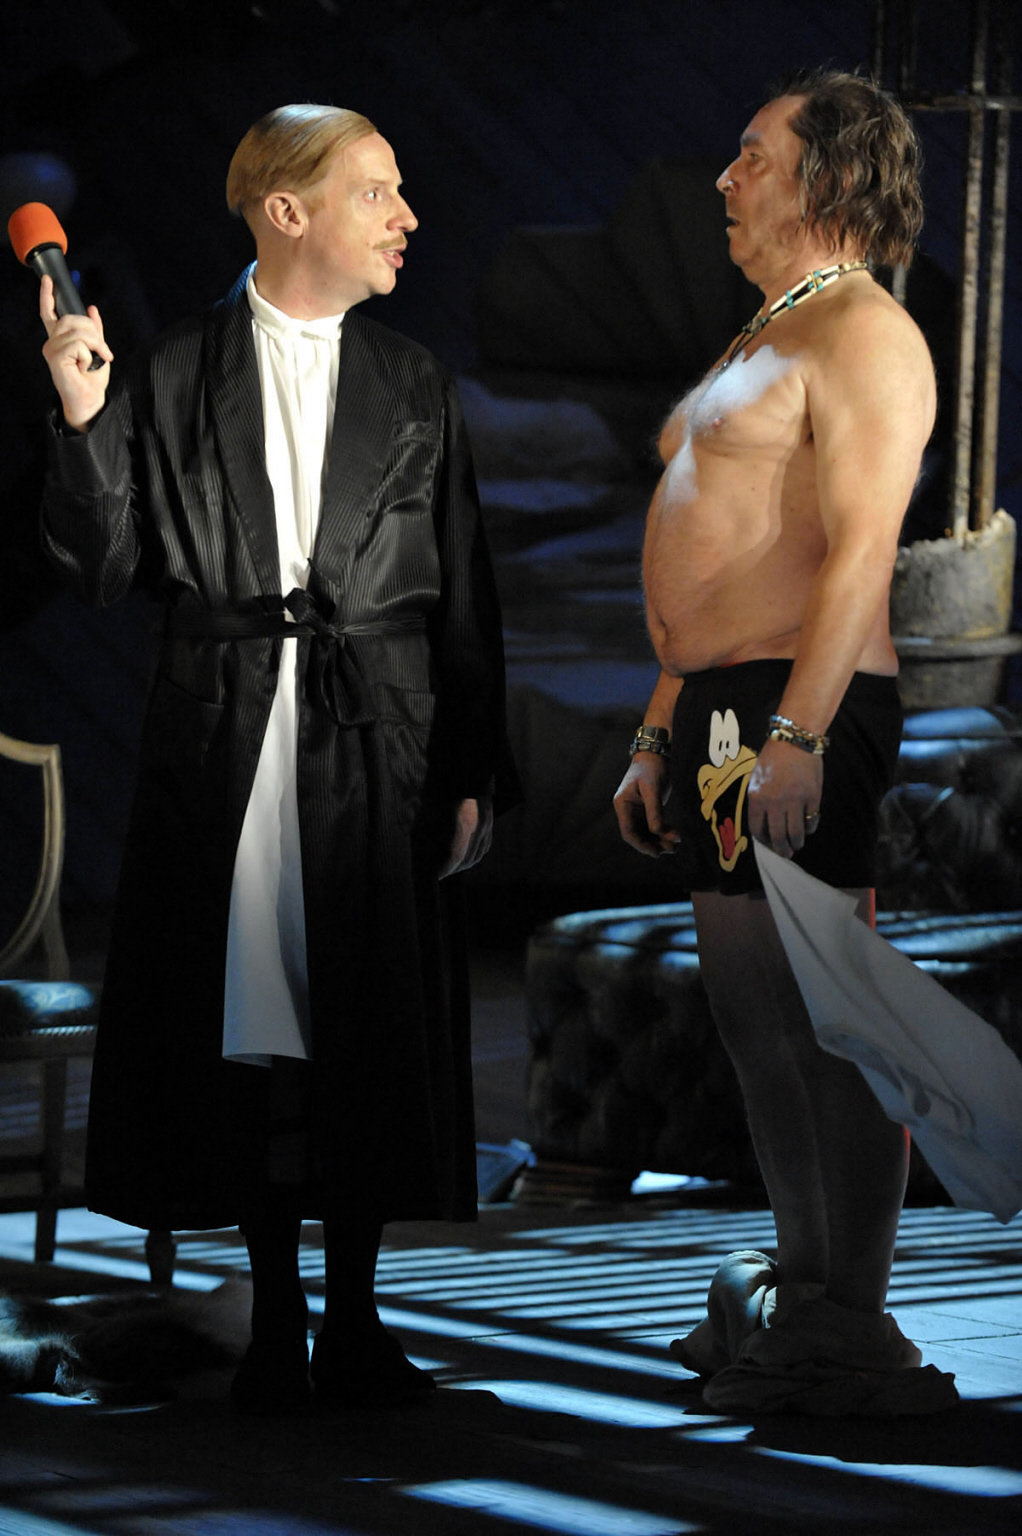 Malvolio is dressed in a nightgown and holding a red microphone out of Sir Toby's reach as he stands and looks at him, topless and in Disney boxer shorts in the 2012 production of Twelfth Night.